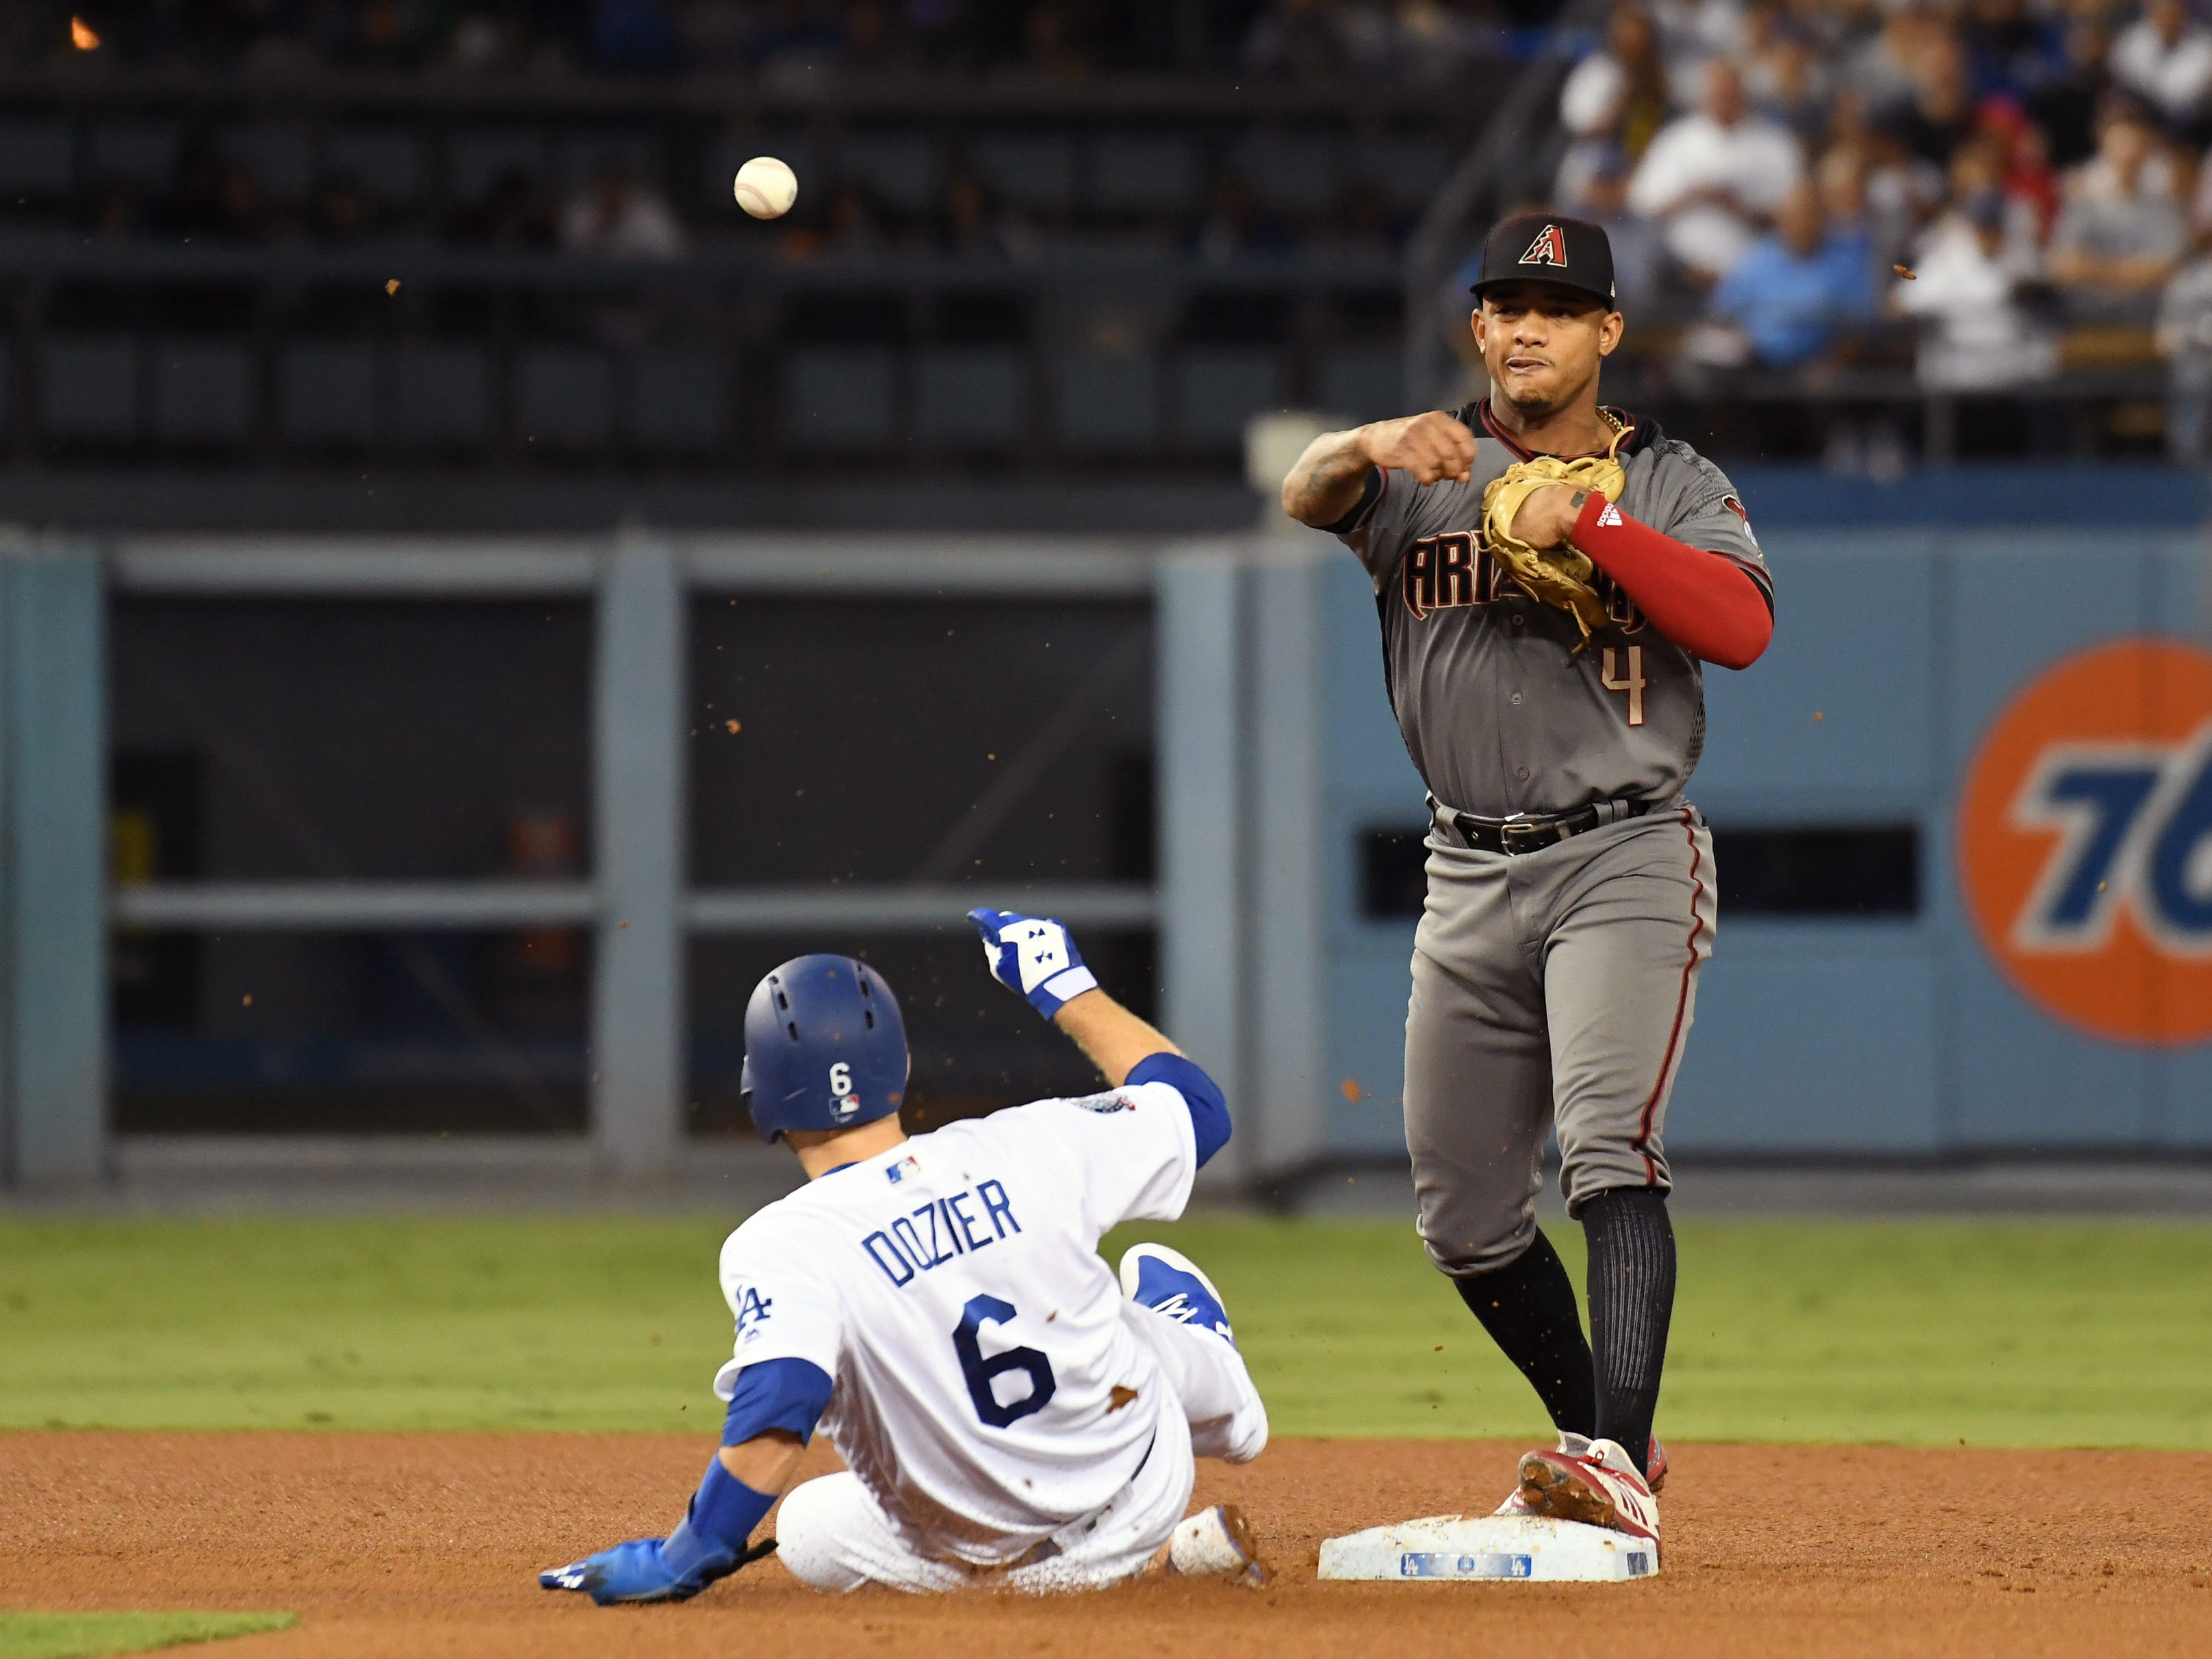 Aug 30, 2018; Los Angeles, CA, USA; Los Angeles Dodgers second baseman Brian Dozier (6) is out against Arizona Diamondbacks shortstop Ketel Marte (4) at second on a double play in the third inning at Dodger Stadium. Mandatory Credit: Richard Mackson-USA TODAY Sports